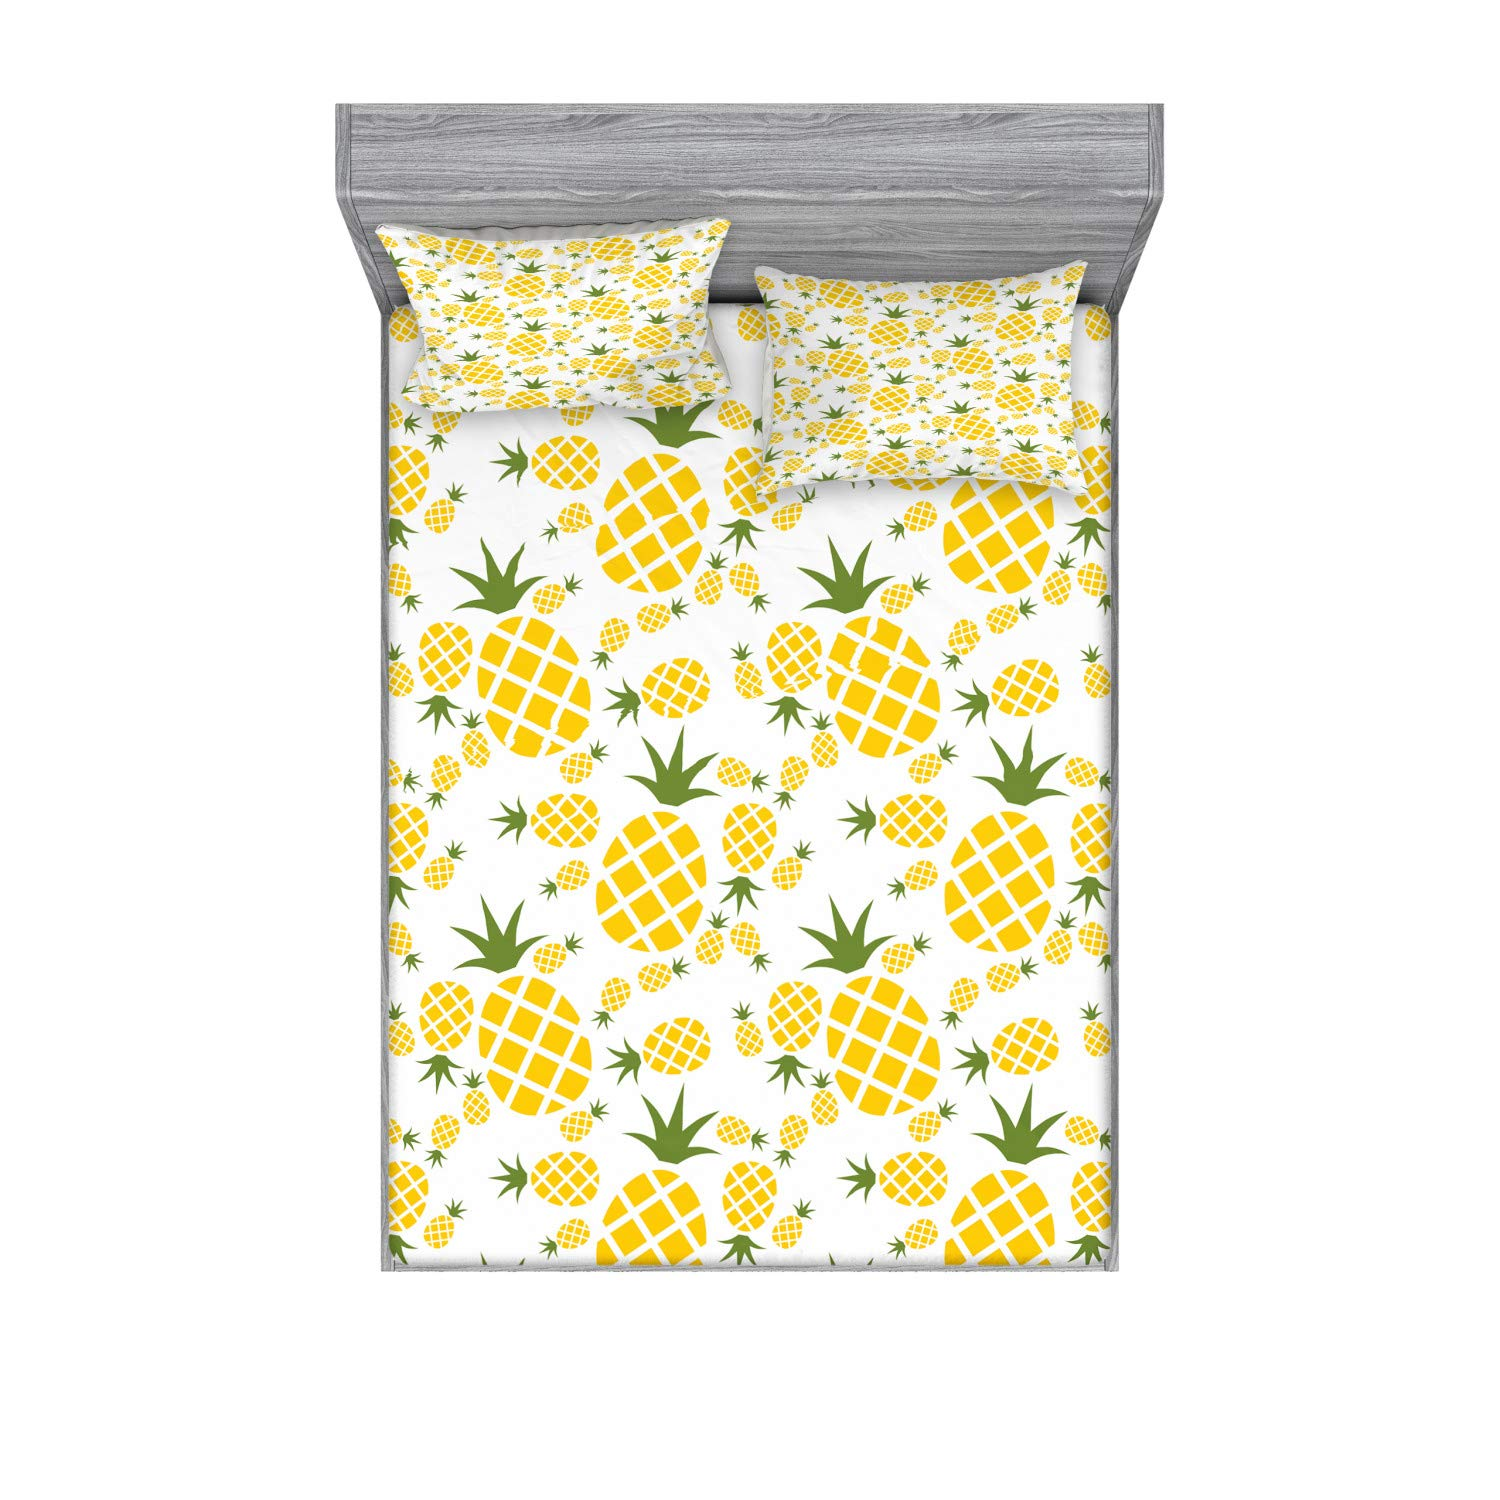 Amazon Com Lunarable Pineapple Fitted Sheet Pillow Sham Set Pineapple In Pictogram Design Vintage Style Pattern Farm Vibrant Color Decorative Printed 3 Piece Bedding Decor Set Full Olive Green Home Kitchen